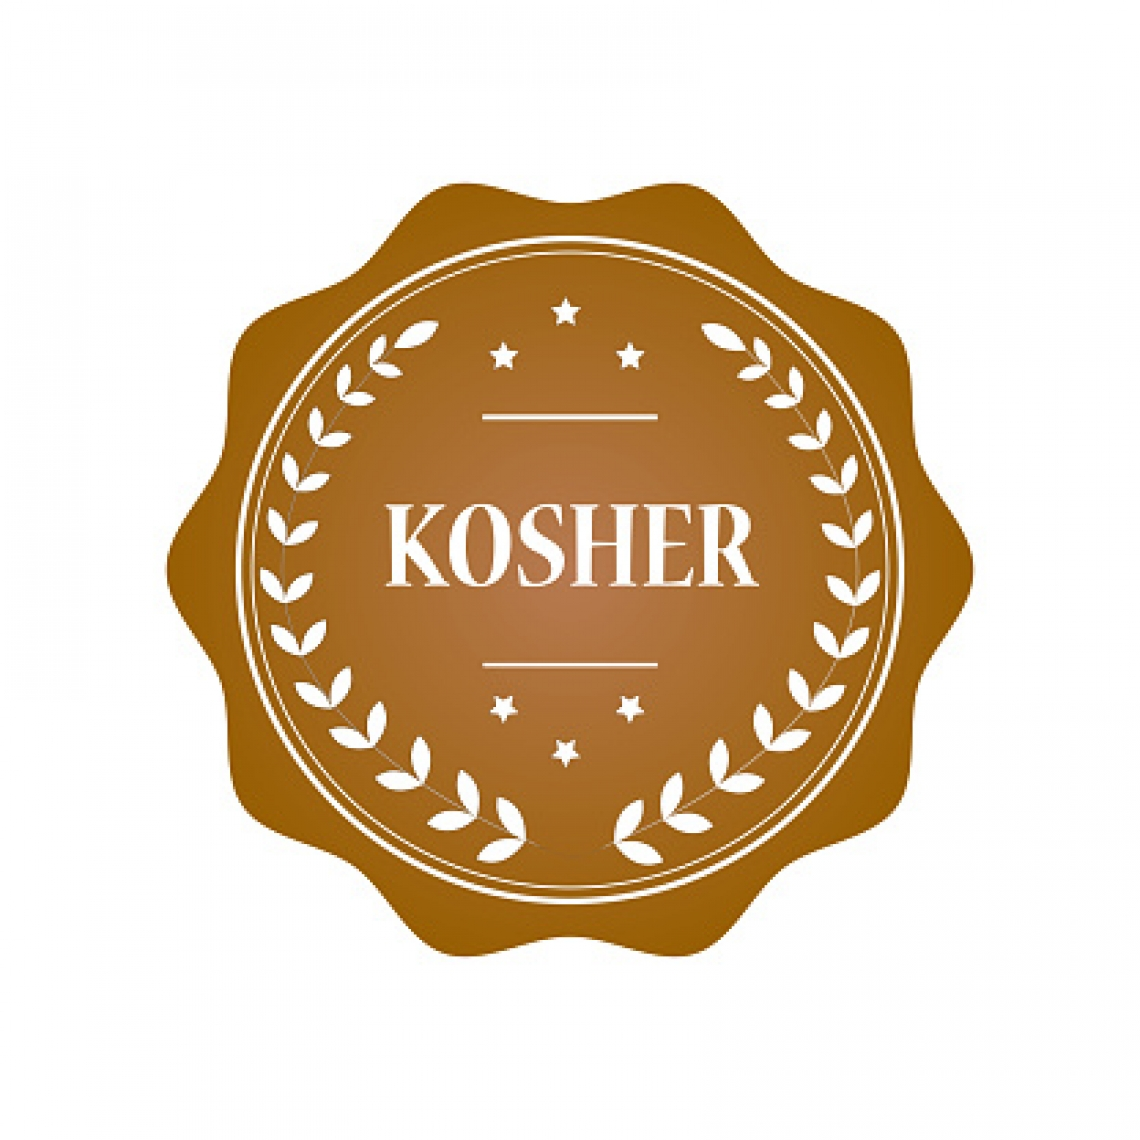 Our applechips are 'Kosher' approved